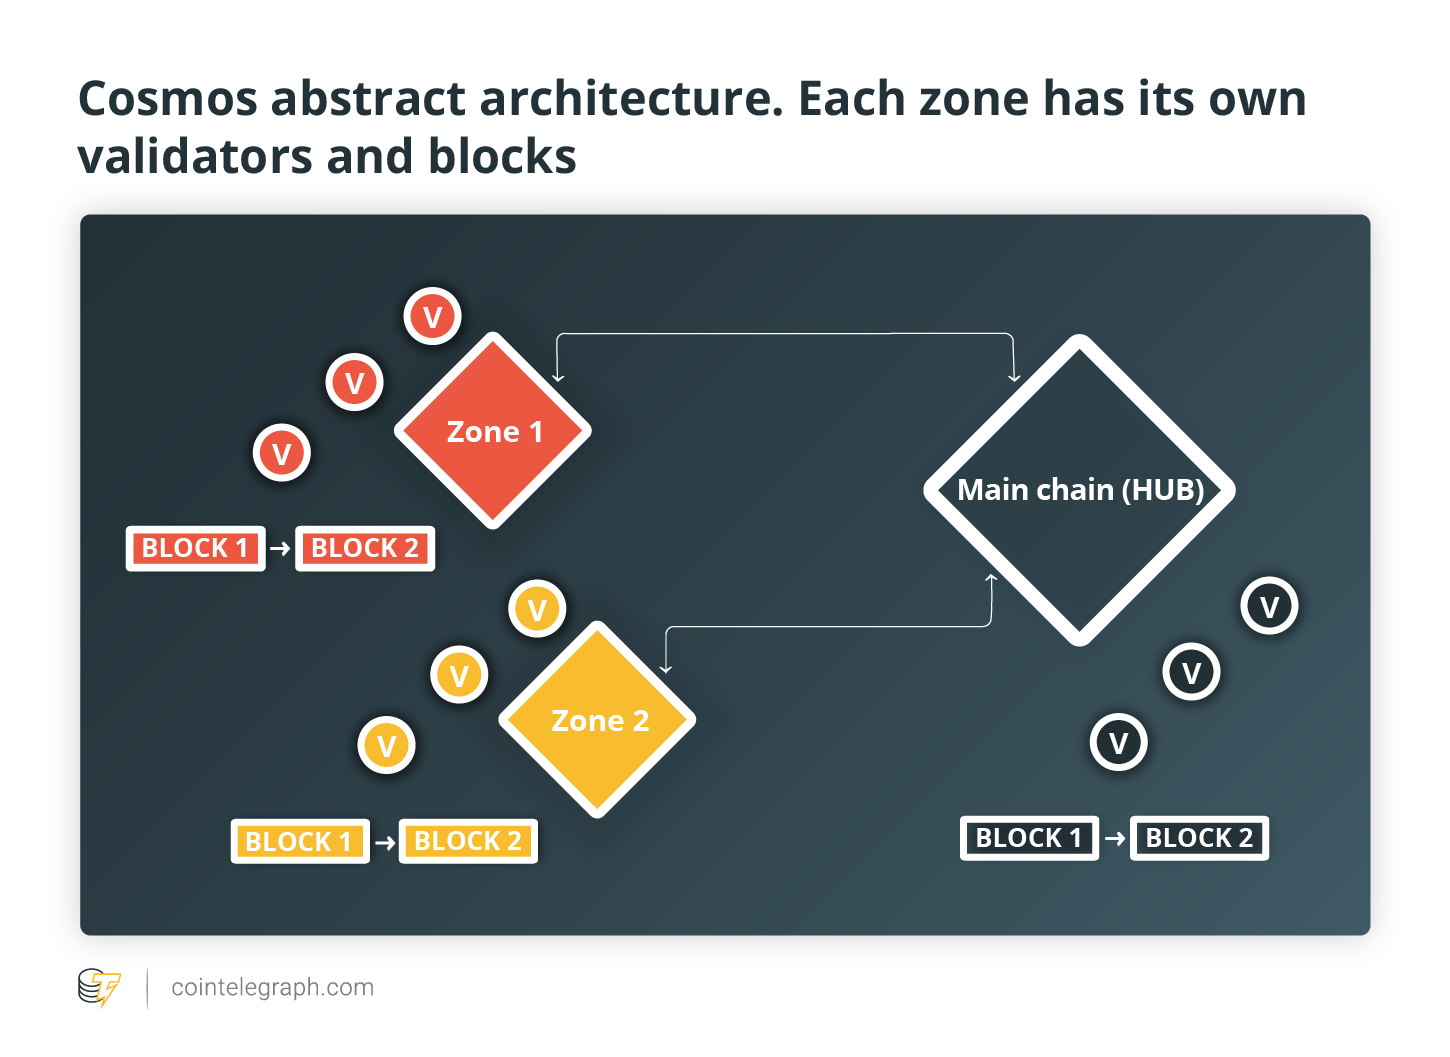 Cosmos abstract architecture. Each zone has its own validators and blocks